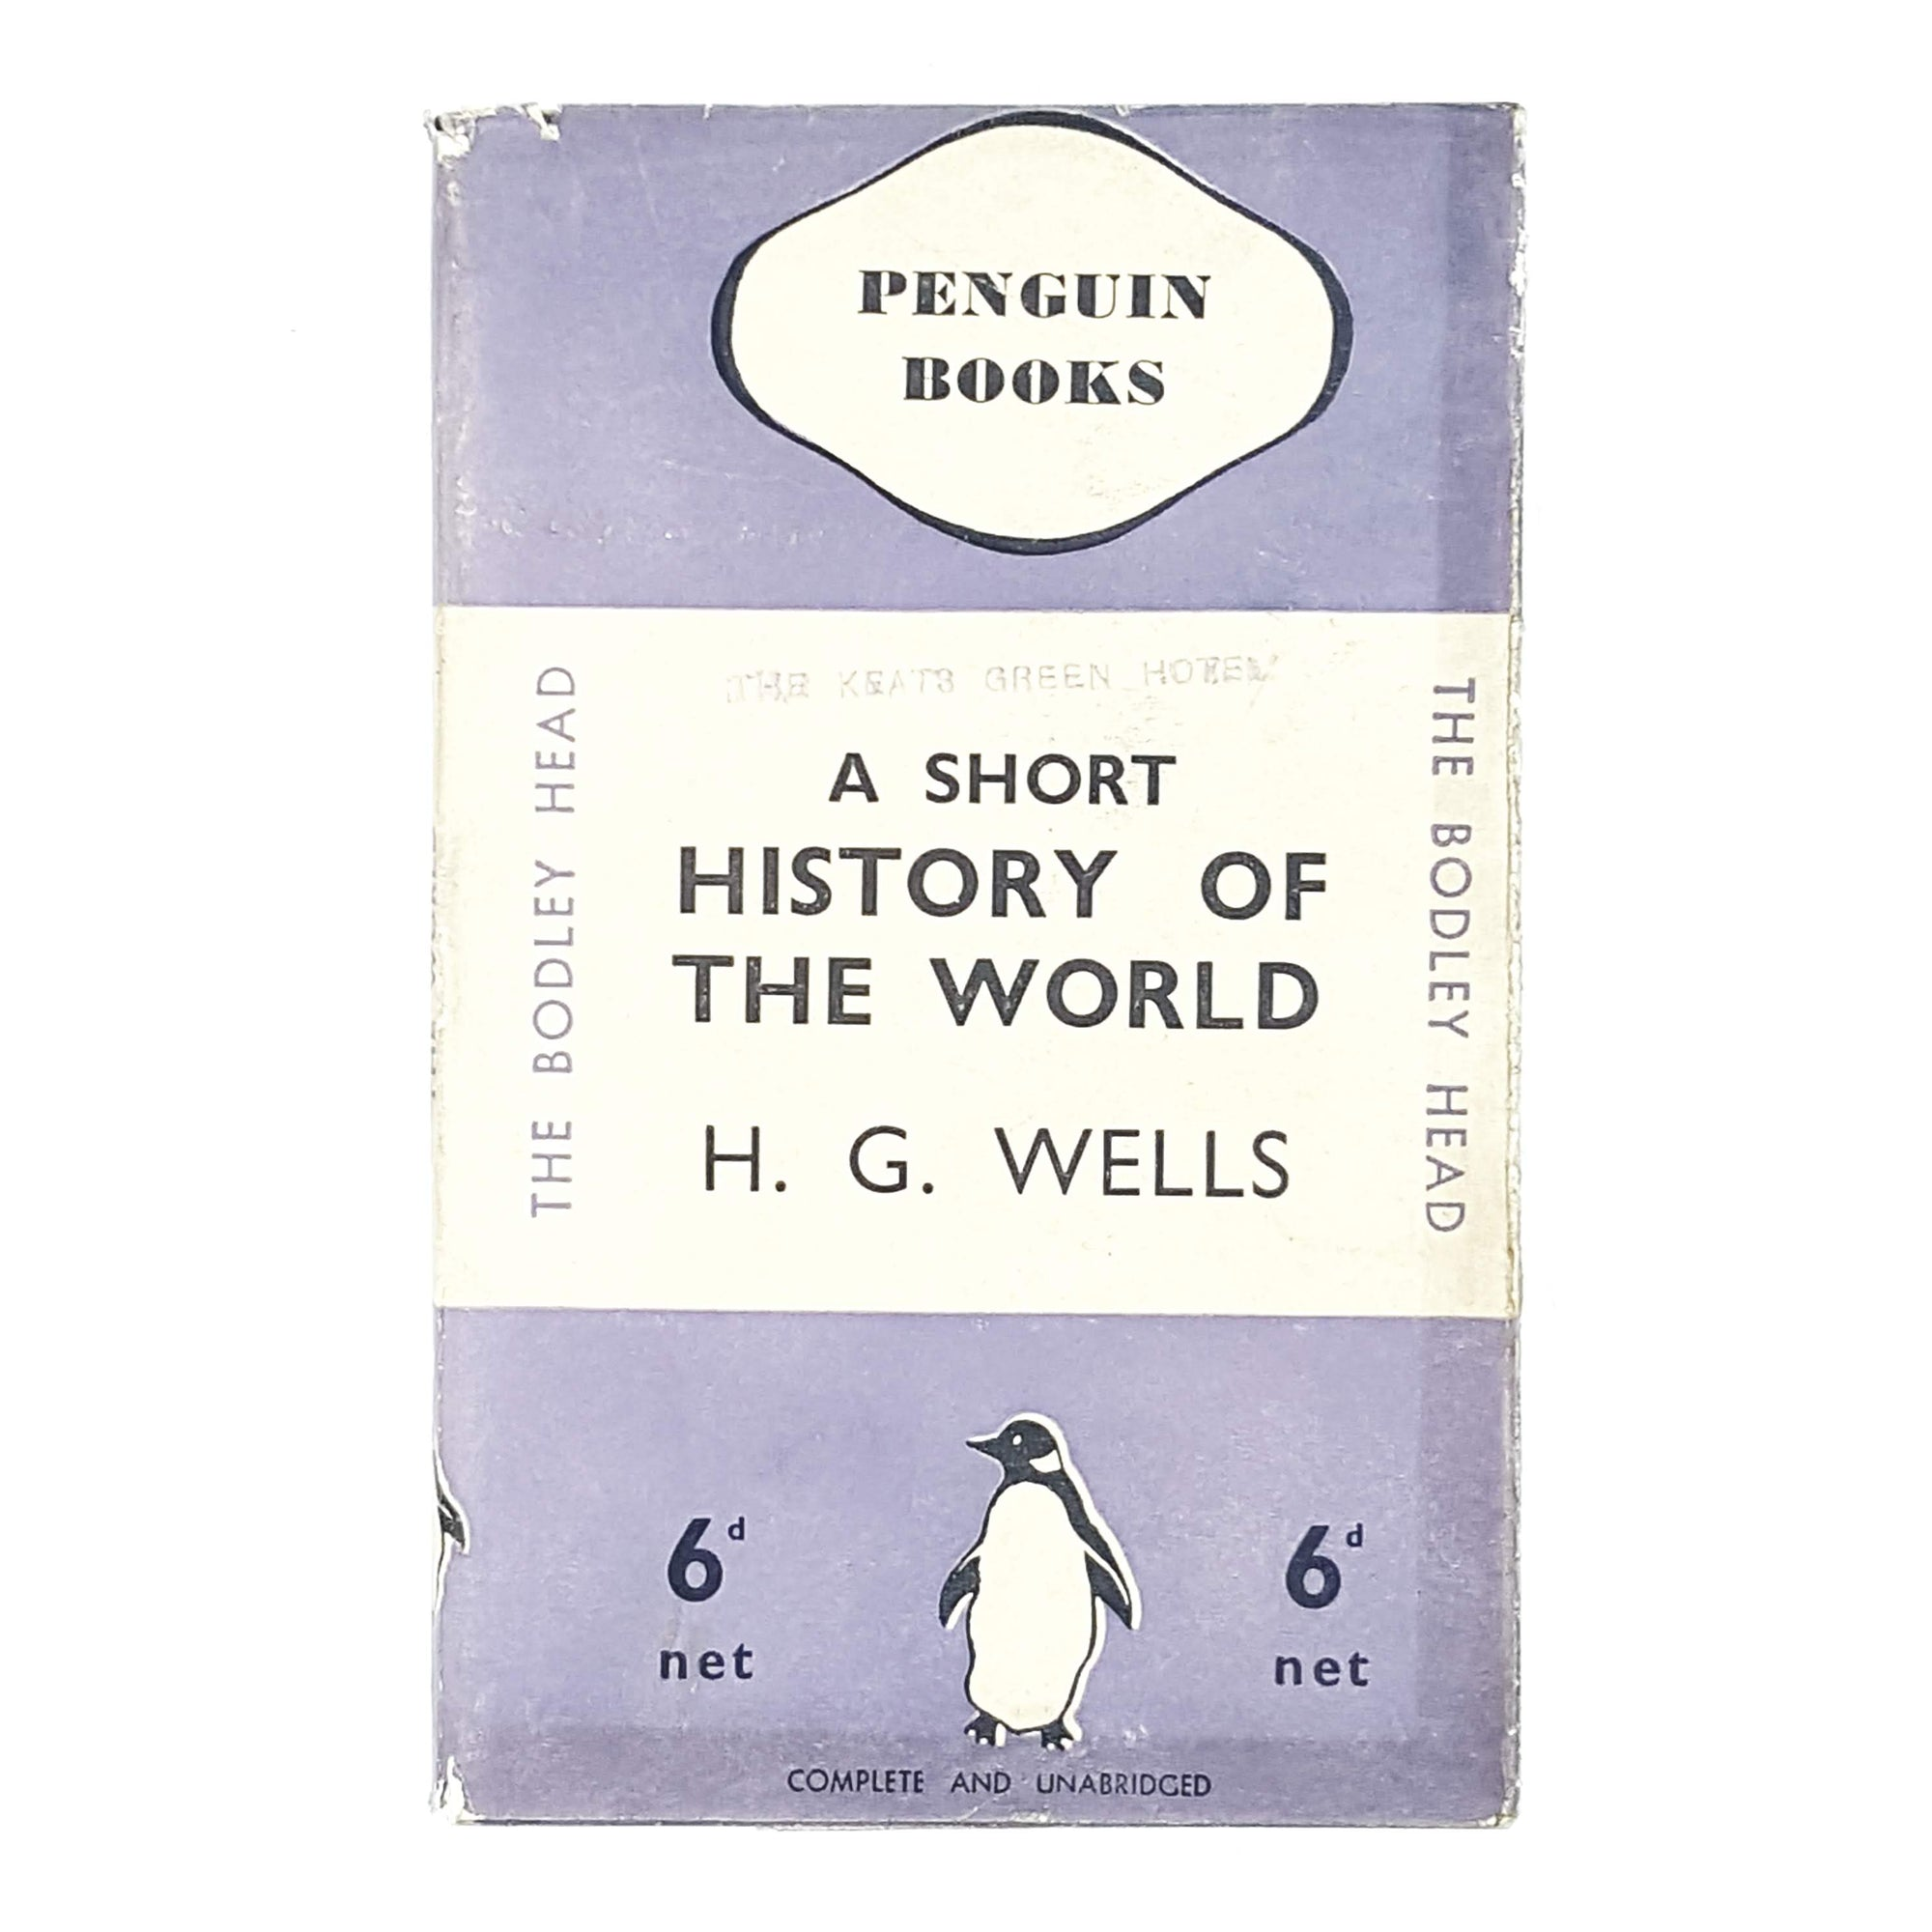 vintage-penguin-a-short-history-of-the-world-lilac-violet-purple-pastel-country-house-library